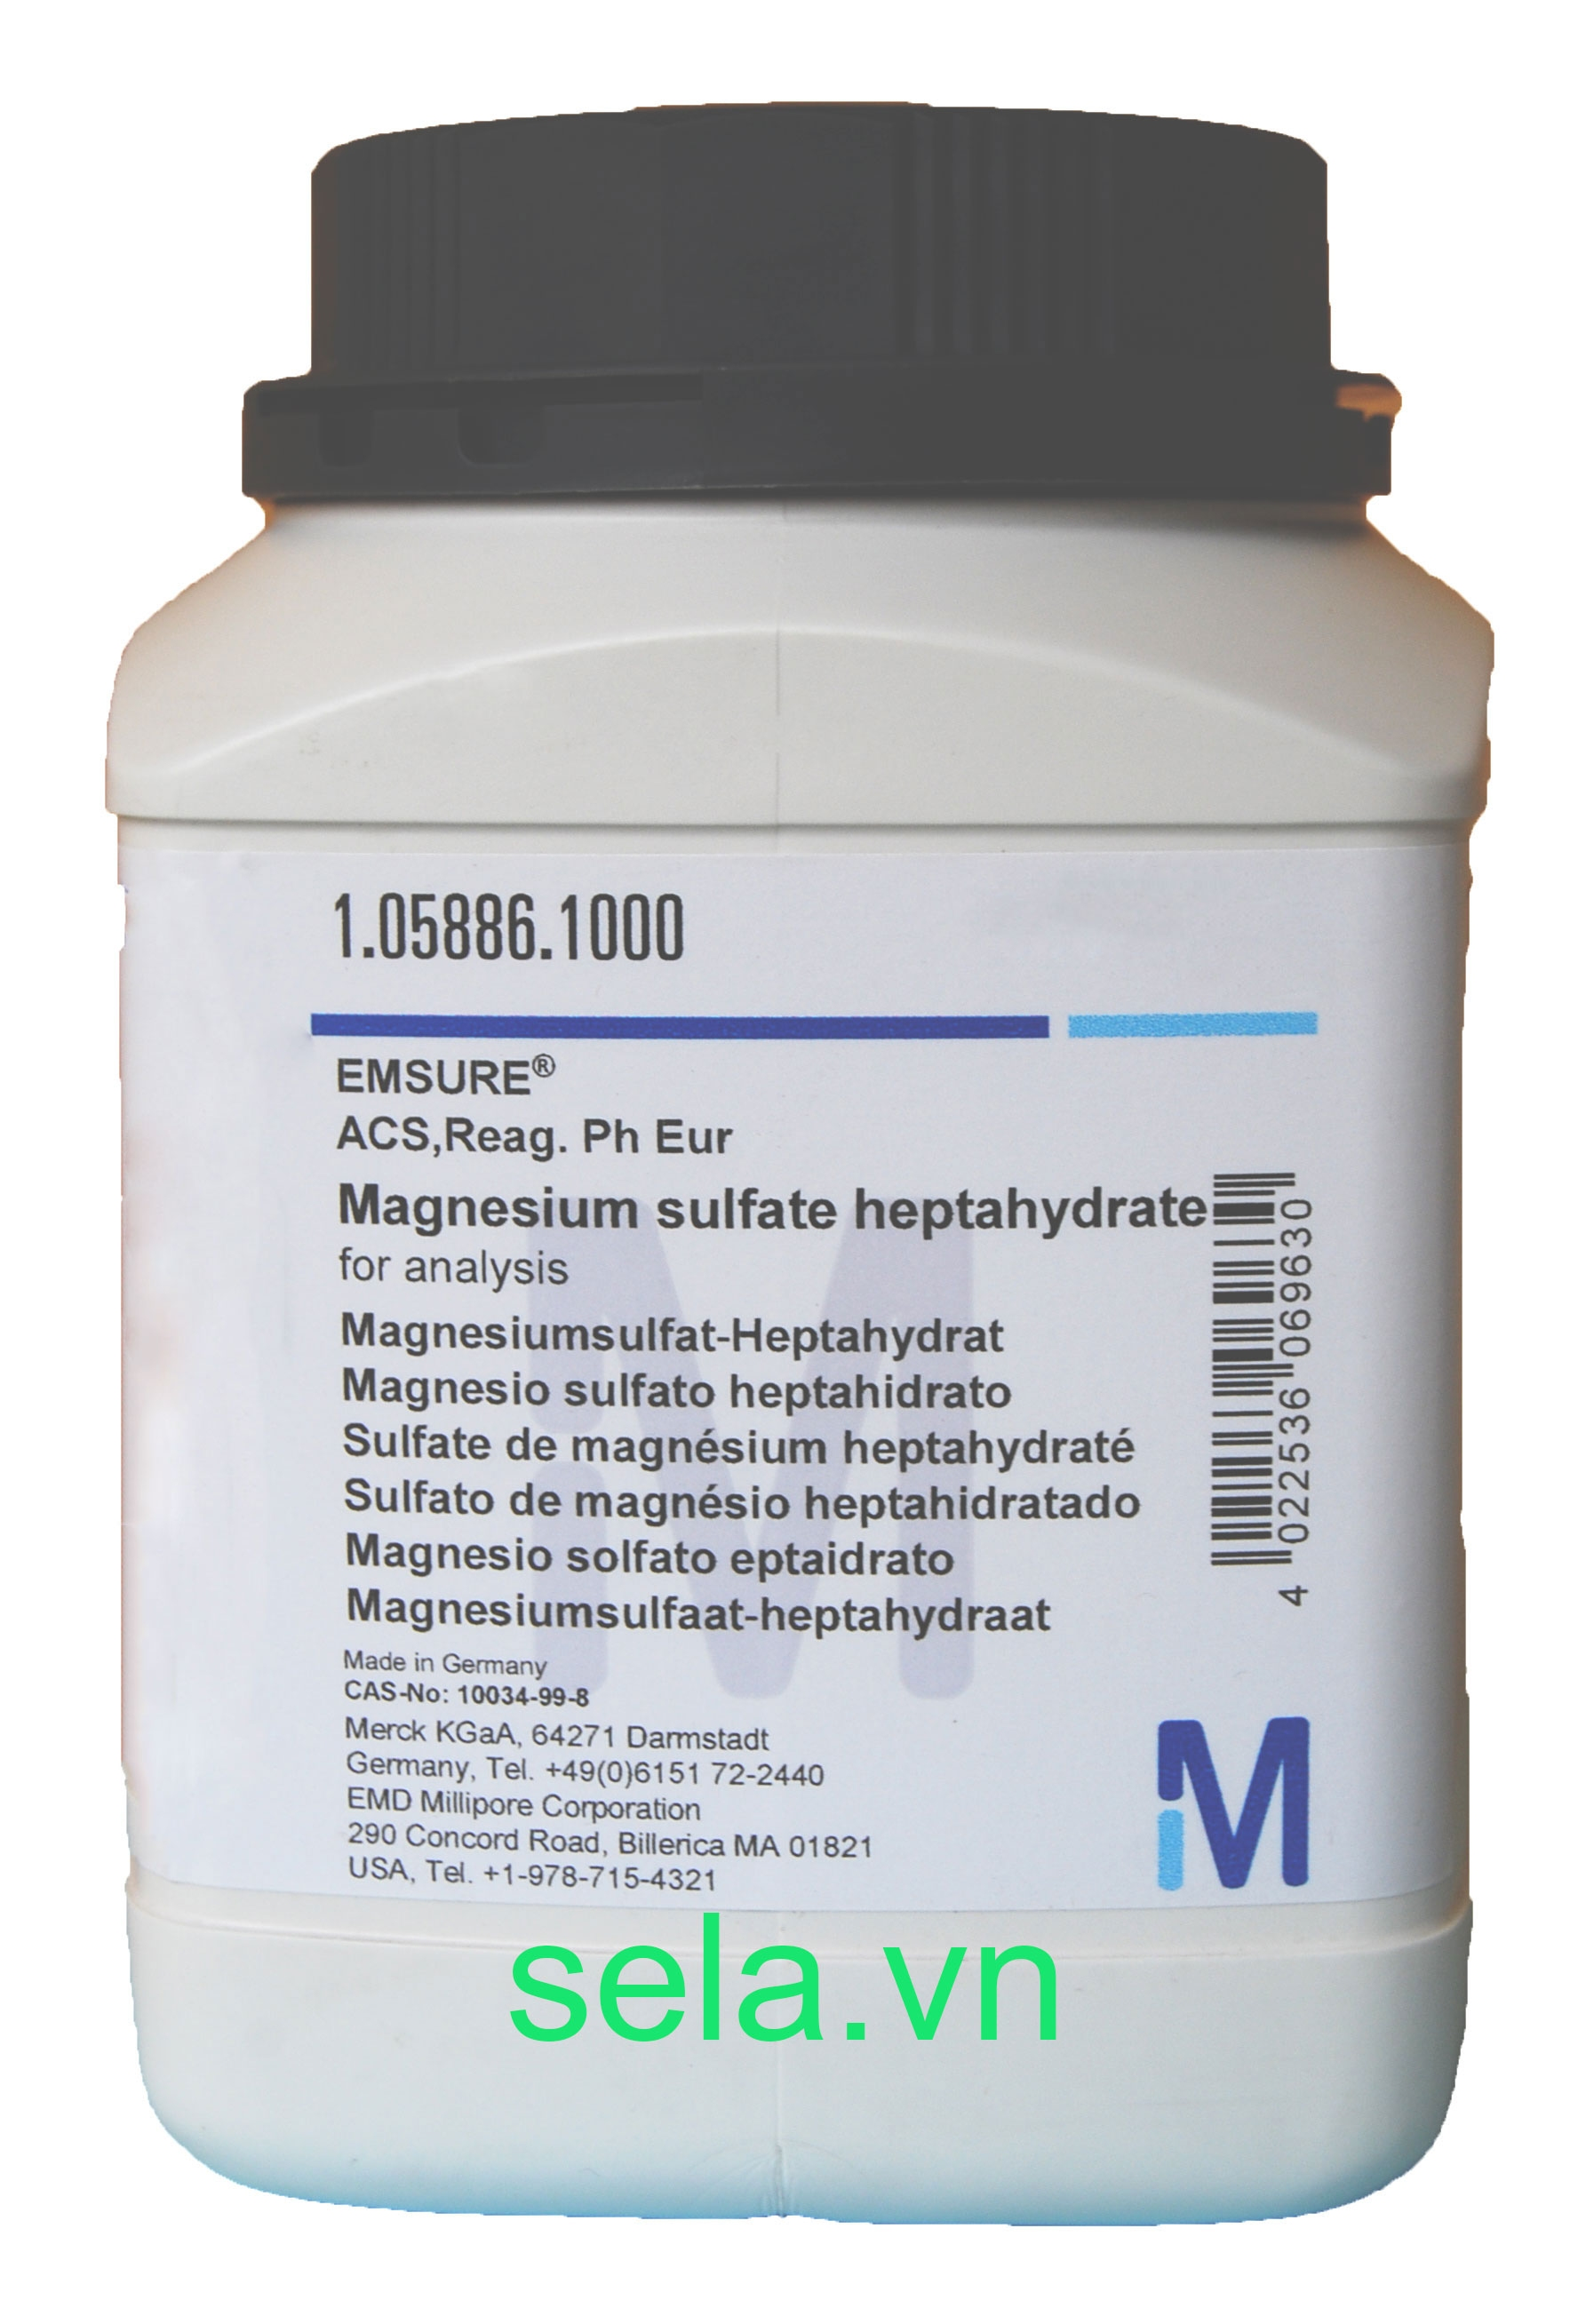 Magnesium sulfate heptahydrate for analysis EMSURE® ACS,Reag. Ph Eur